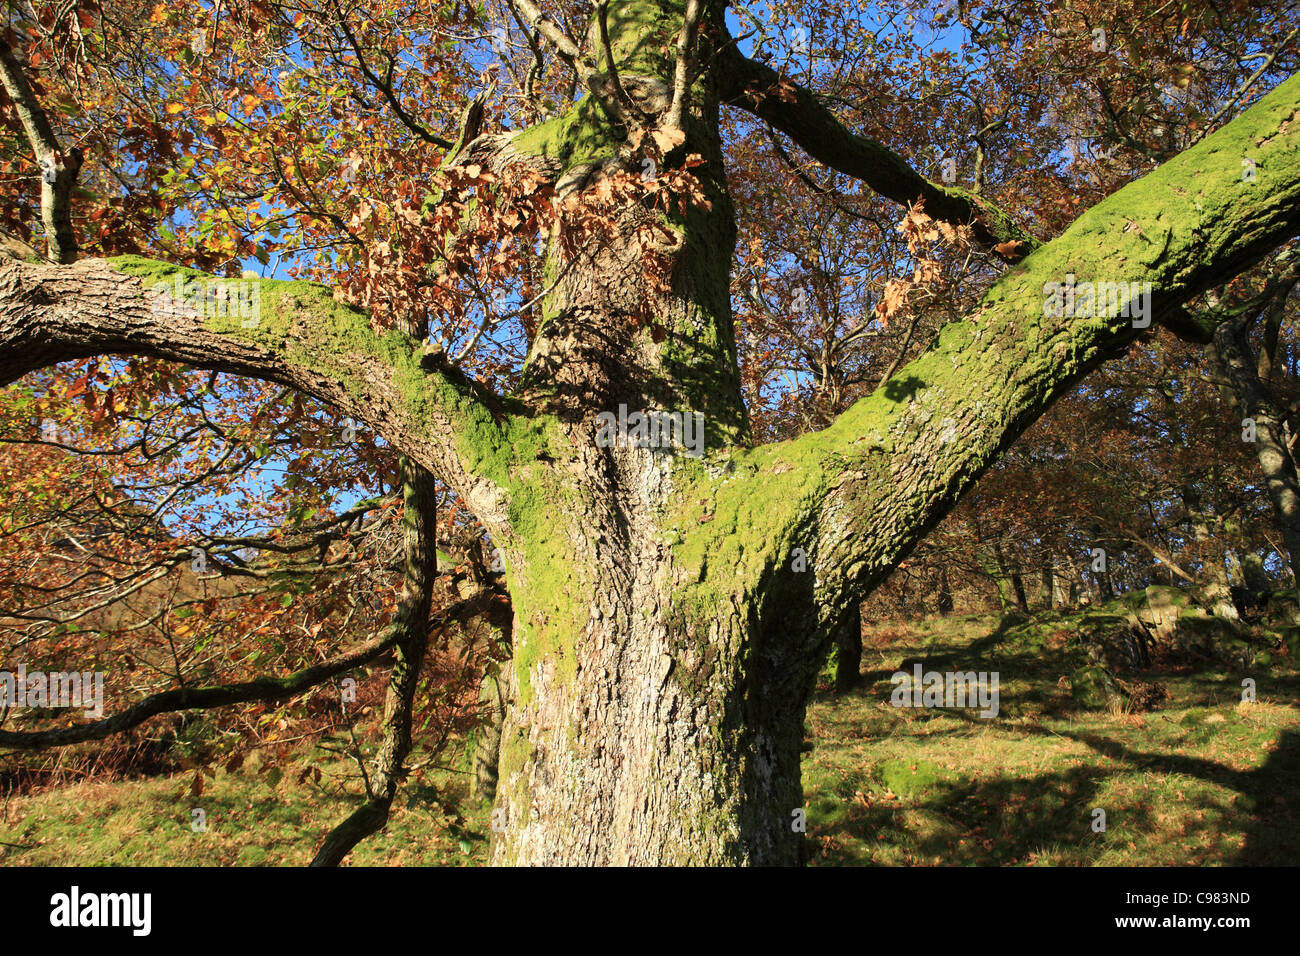 Old moss covered tree looking like a human torso English Lake District, Cumbria, UK - Stock Image